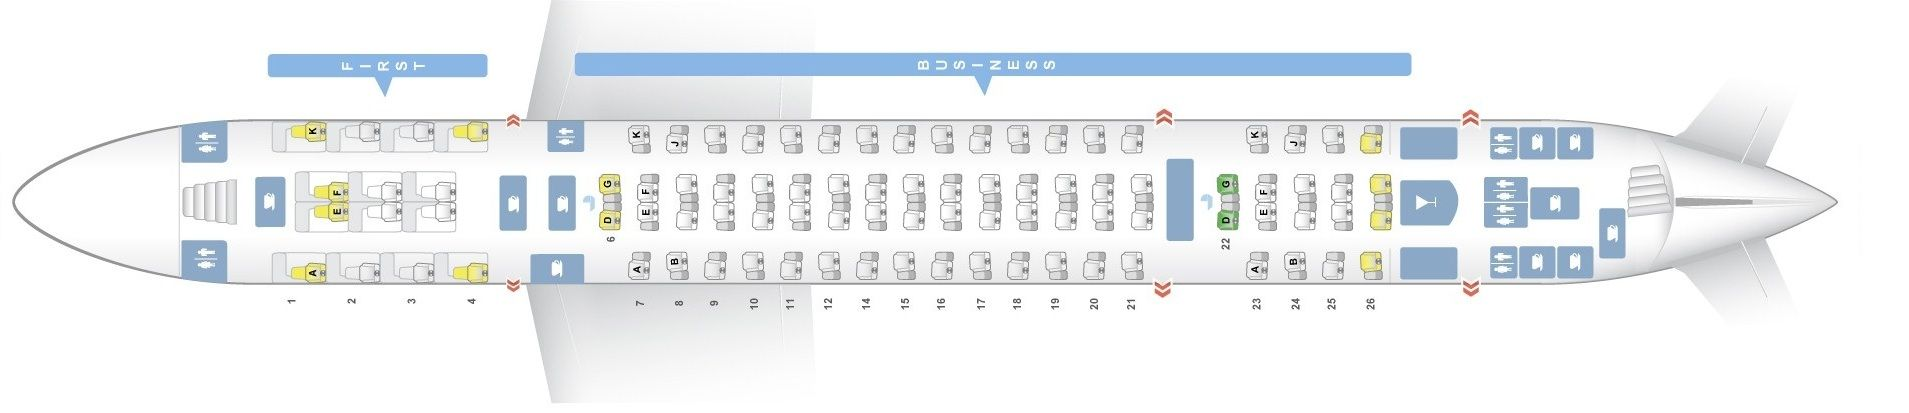 Seat Map And Seating Chart Airbus A380 800 Emirates Three Class V1 Upper Deck Emirates Fleet Emirates Airbus Seating Plan